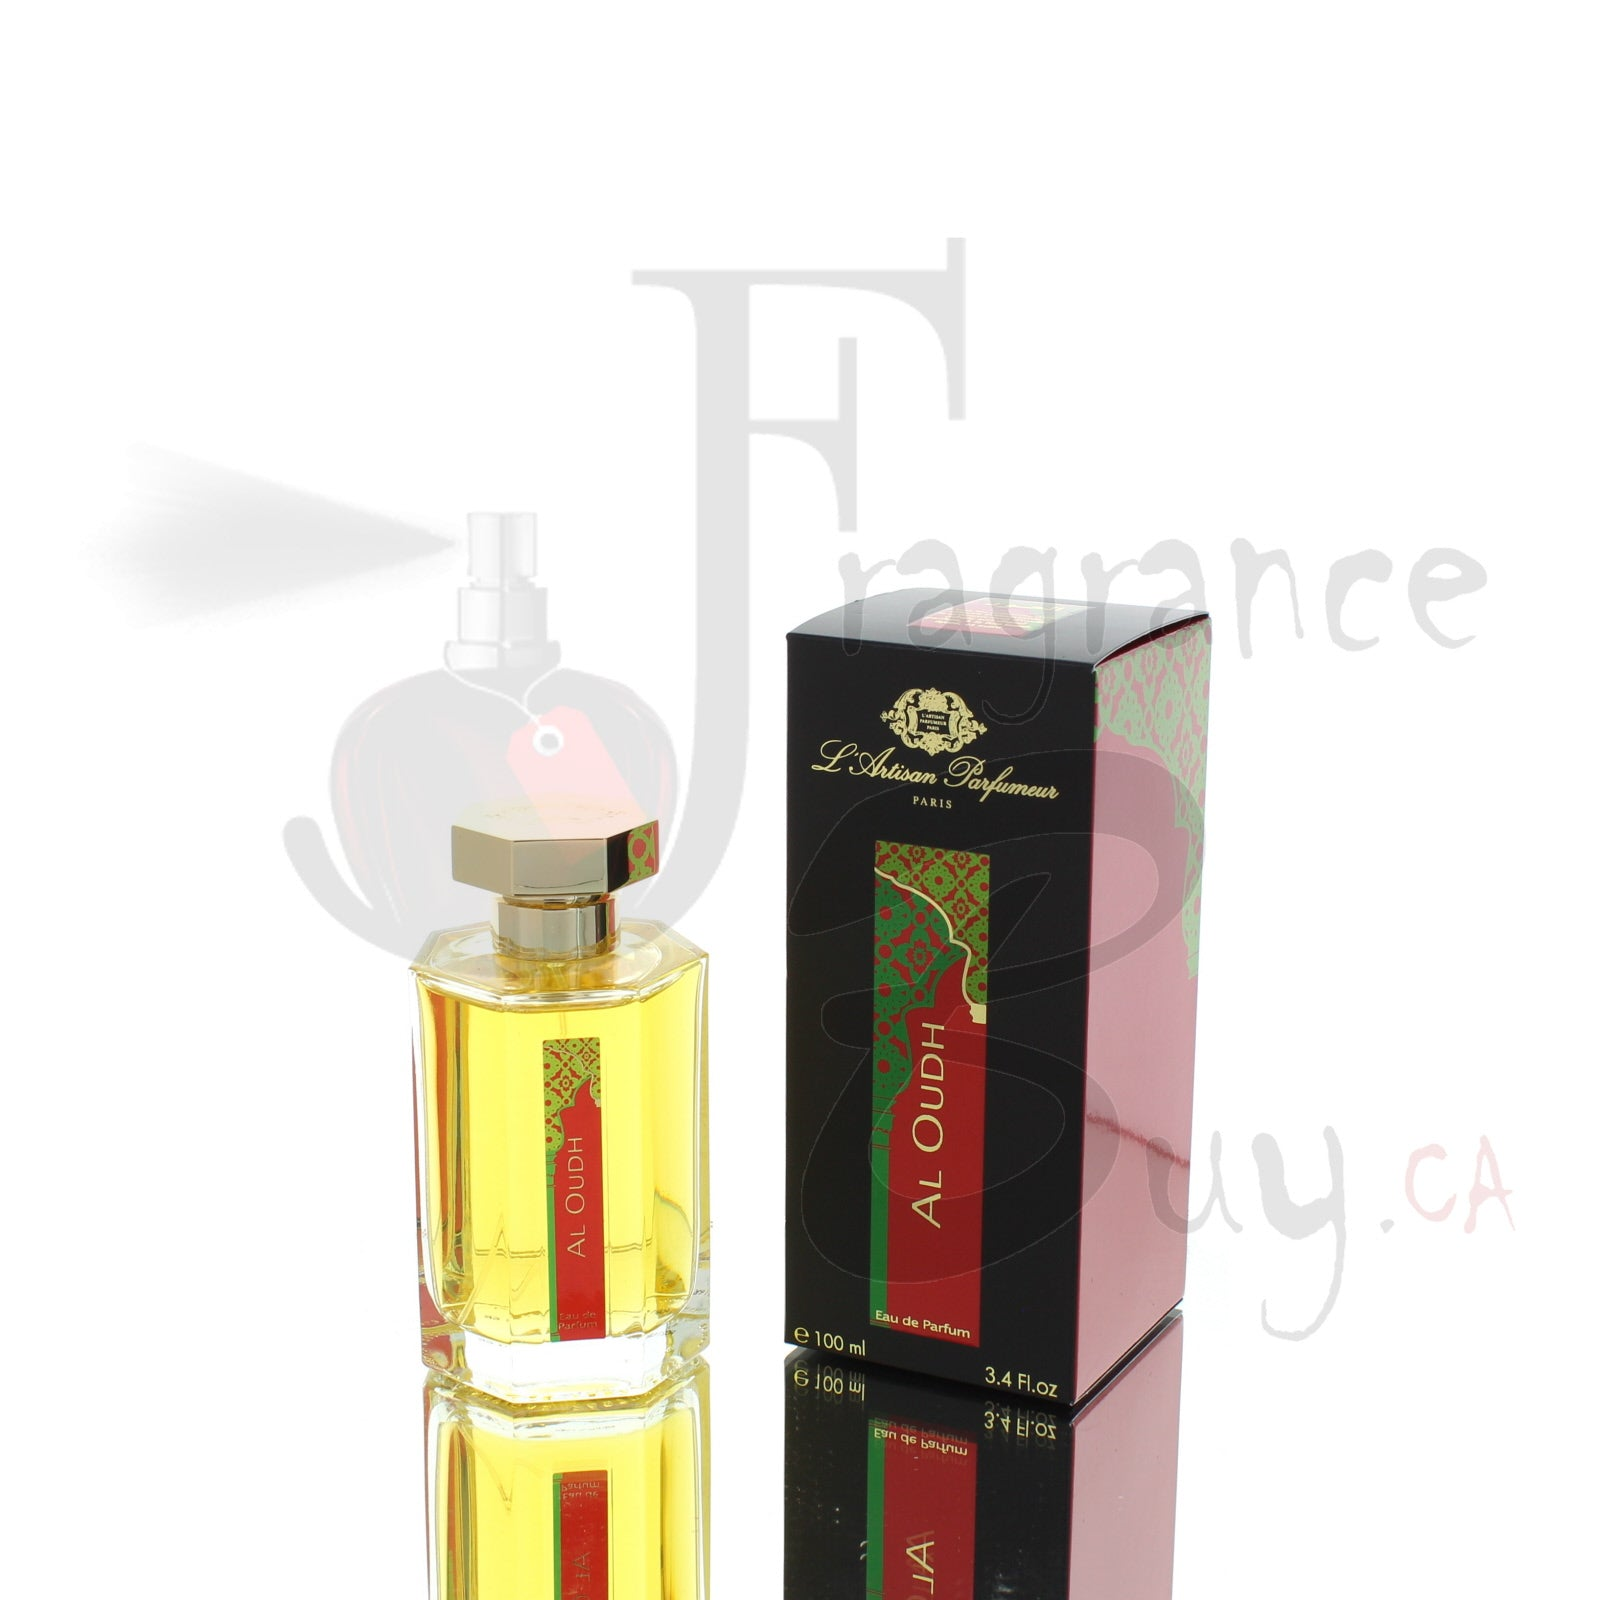 Al Oudh L'Artisan Parfumeur For Woman